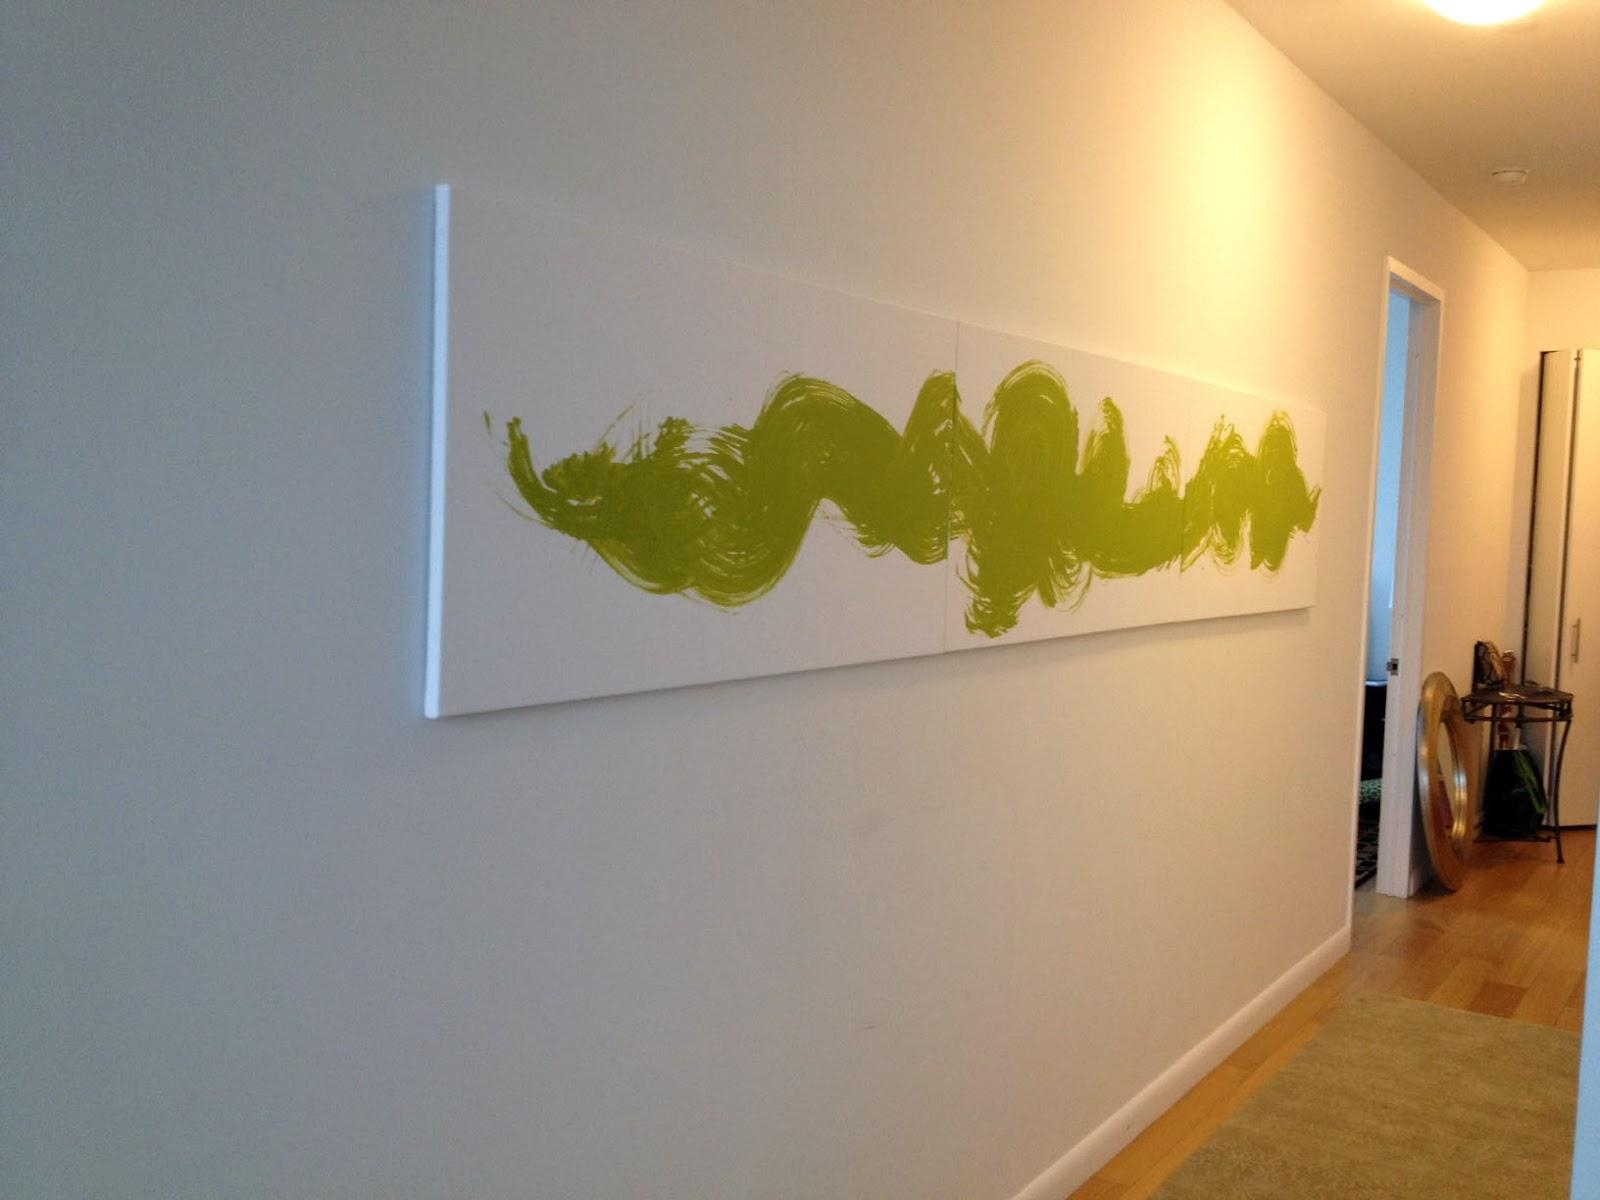 Wall Art Ideas Gallery And For Hallways Inspirations – Artenzo With Wall Art Ideas For Hallways (Image 17 of 20)